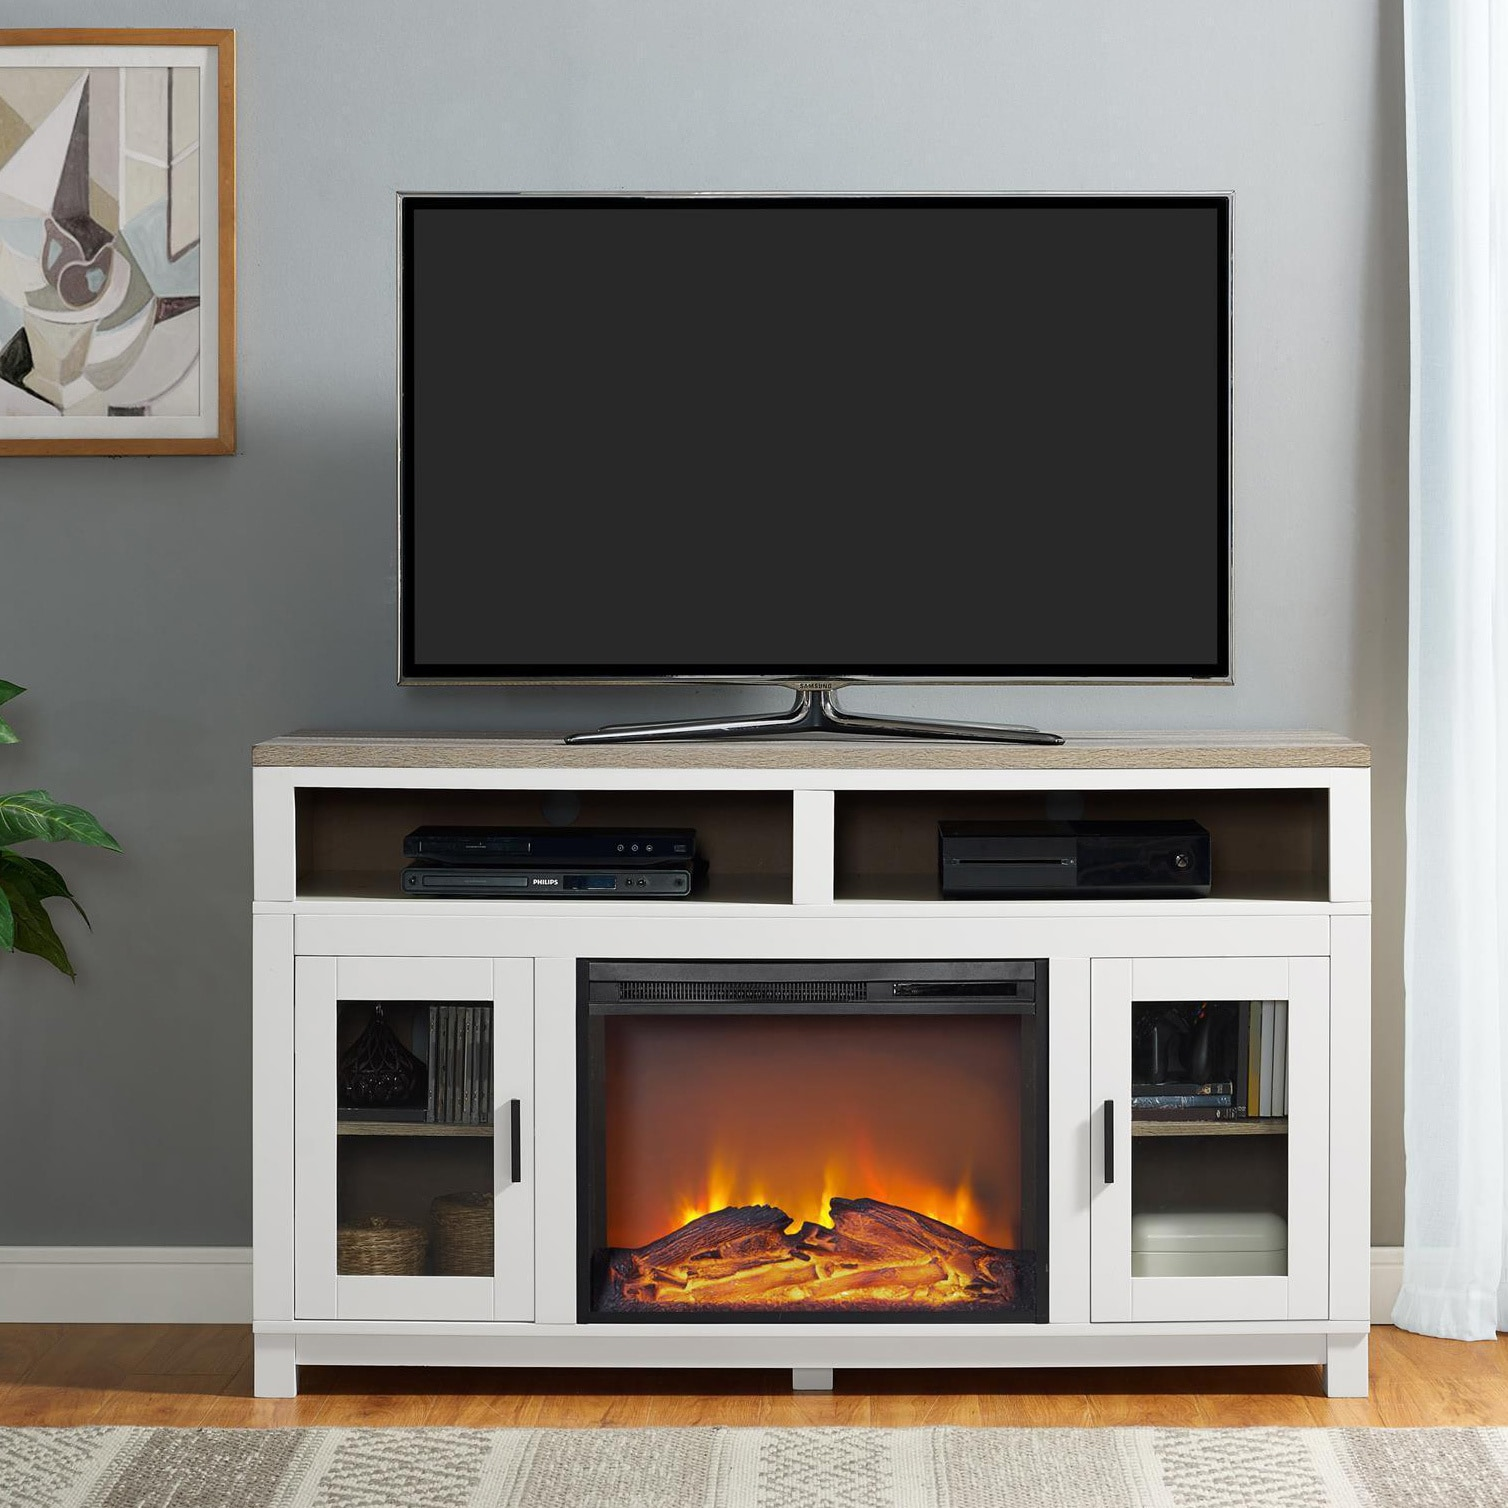 Modern Electric Fireplace Tv Stand Html Amazing Home Design 2019